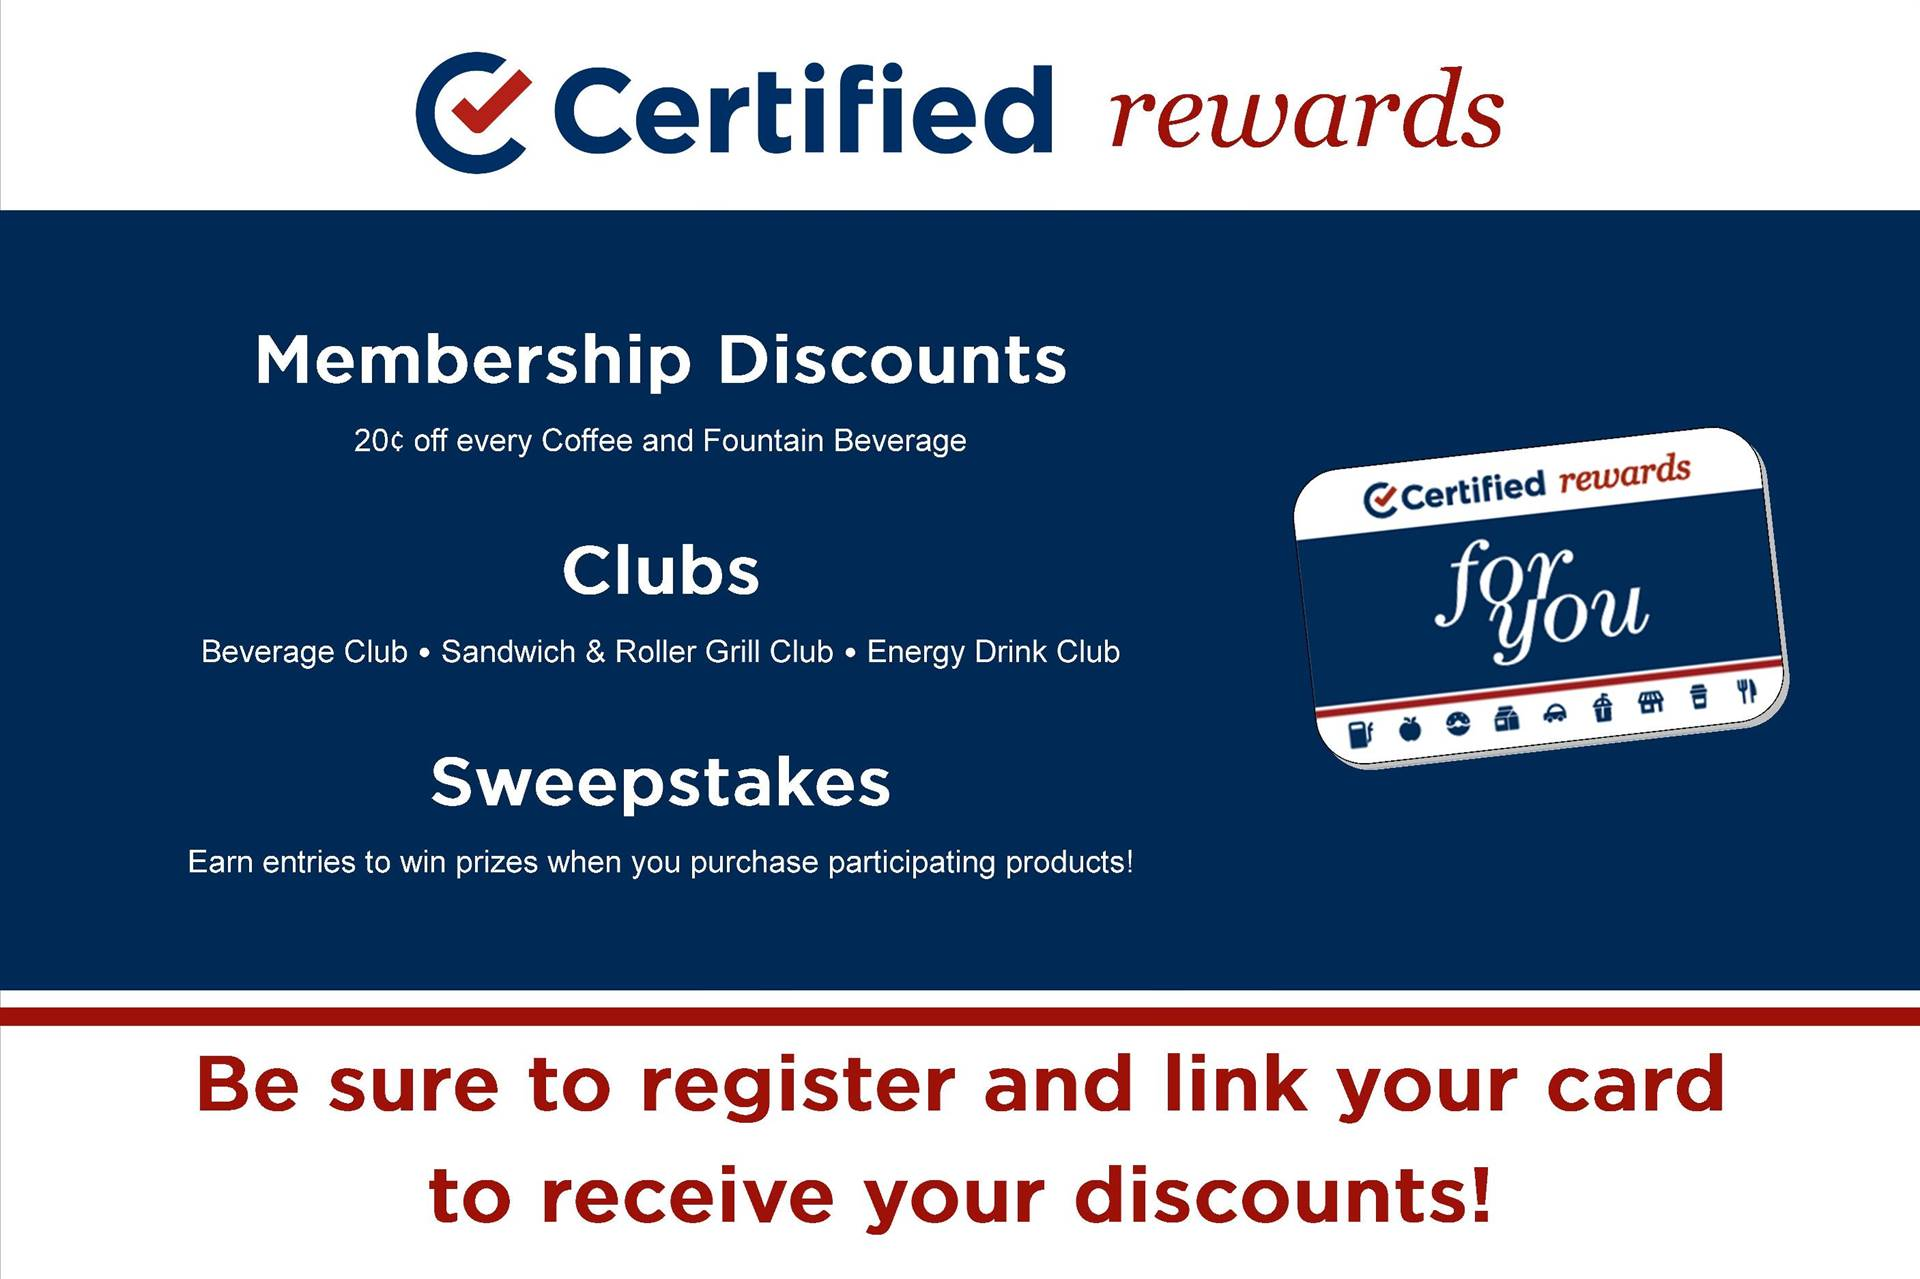 Certified Rewards - Member Discounts, Clubs, & Sweepstakes